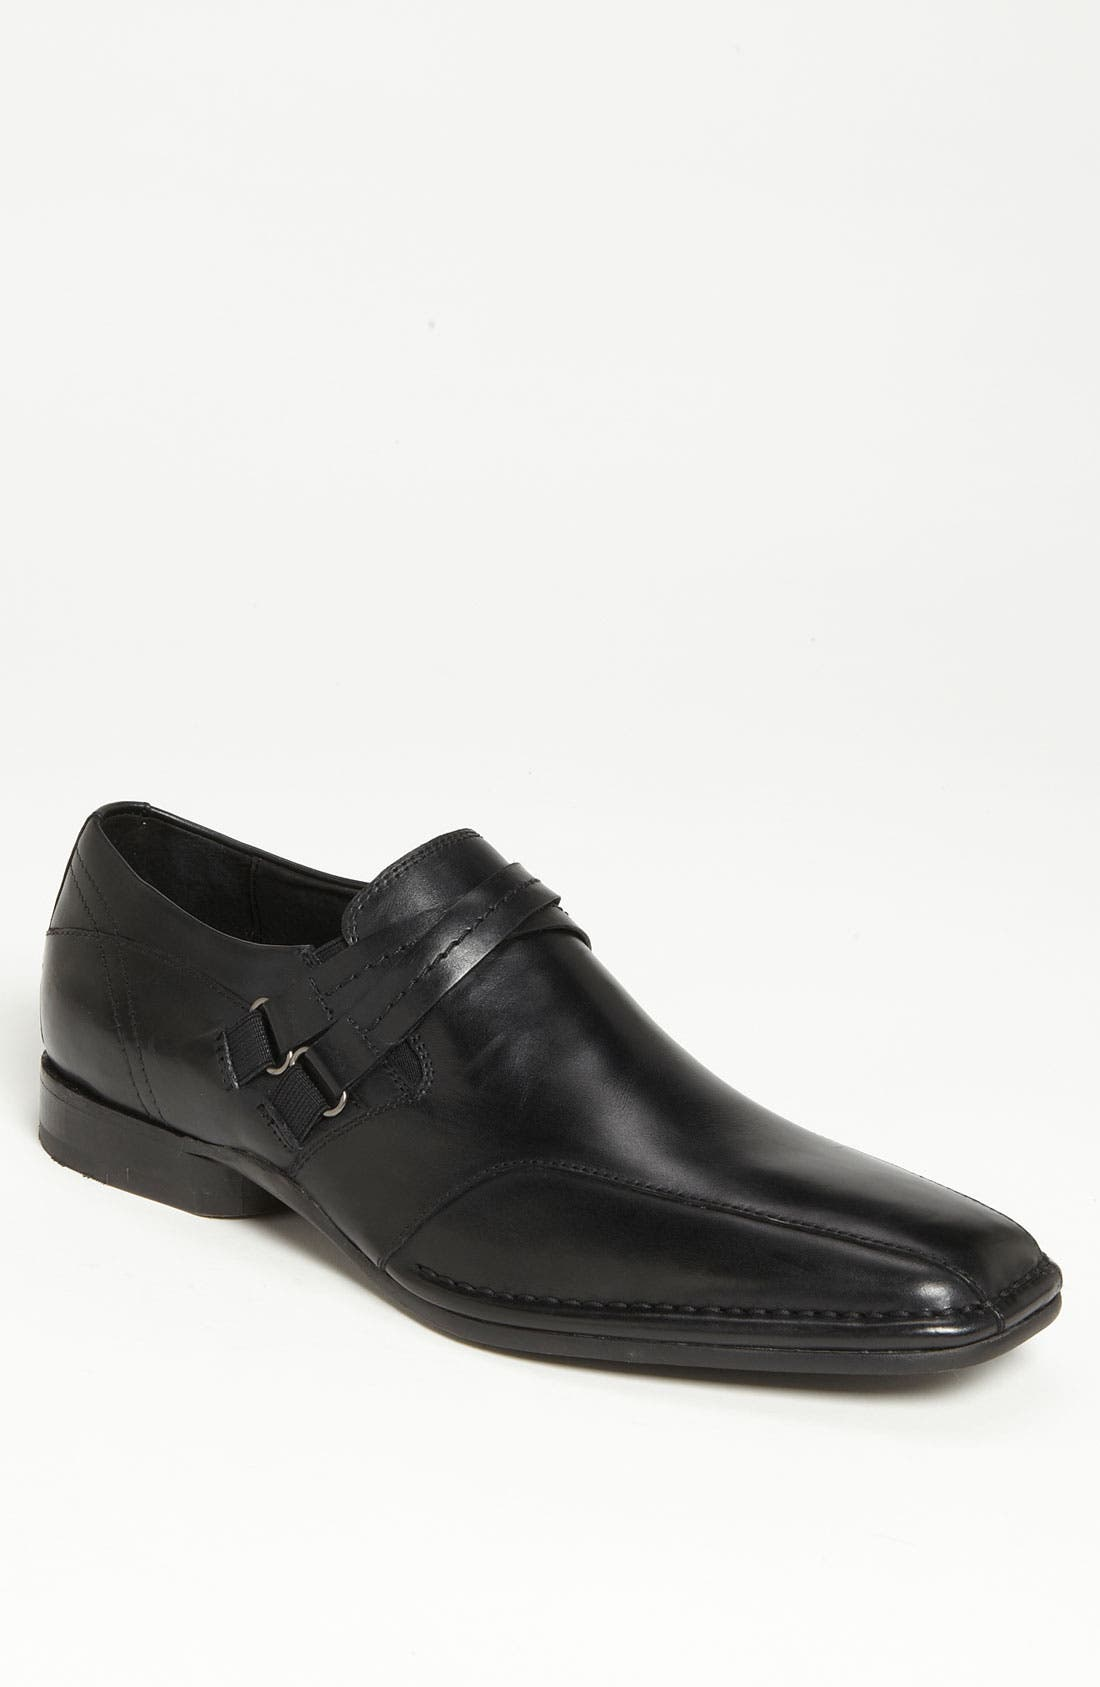 Alternate Image 1 Selected - Kenneth Cole New York 'Way Out There' Monk Strap Loafer (Online Exclusive)